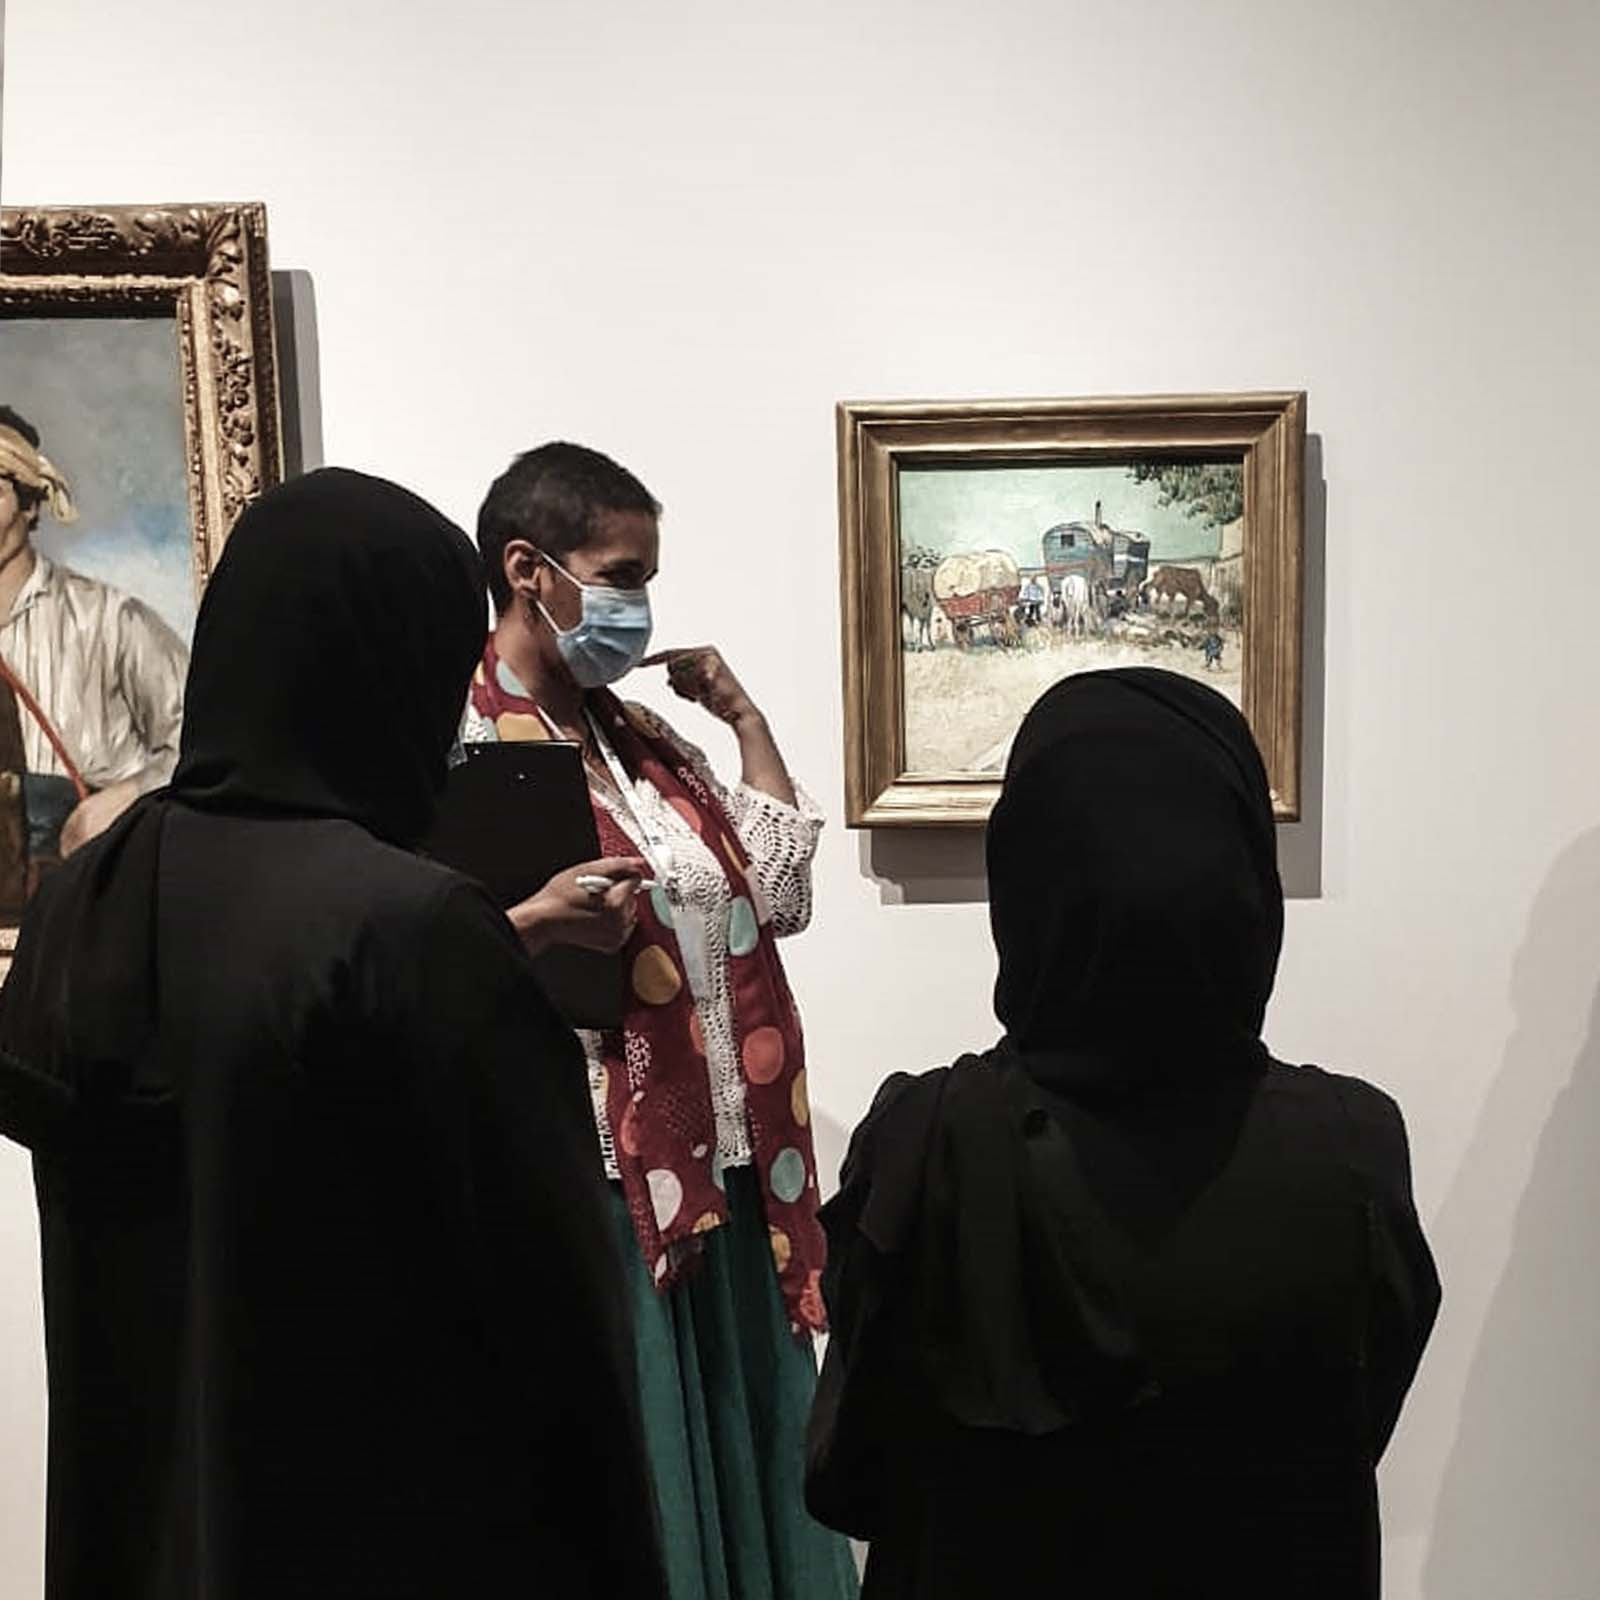 Training in the permanent galeries at Louvre Abu Dhabi